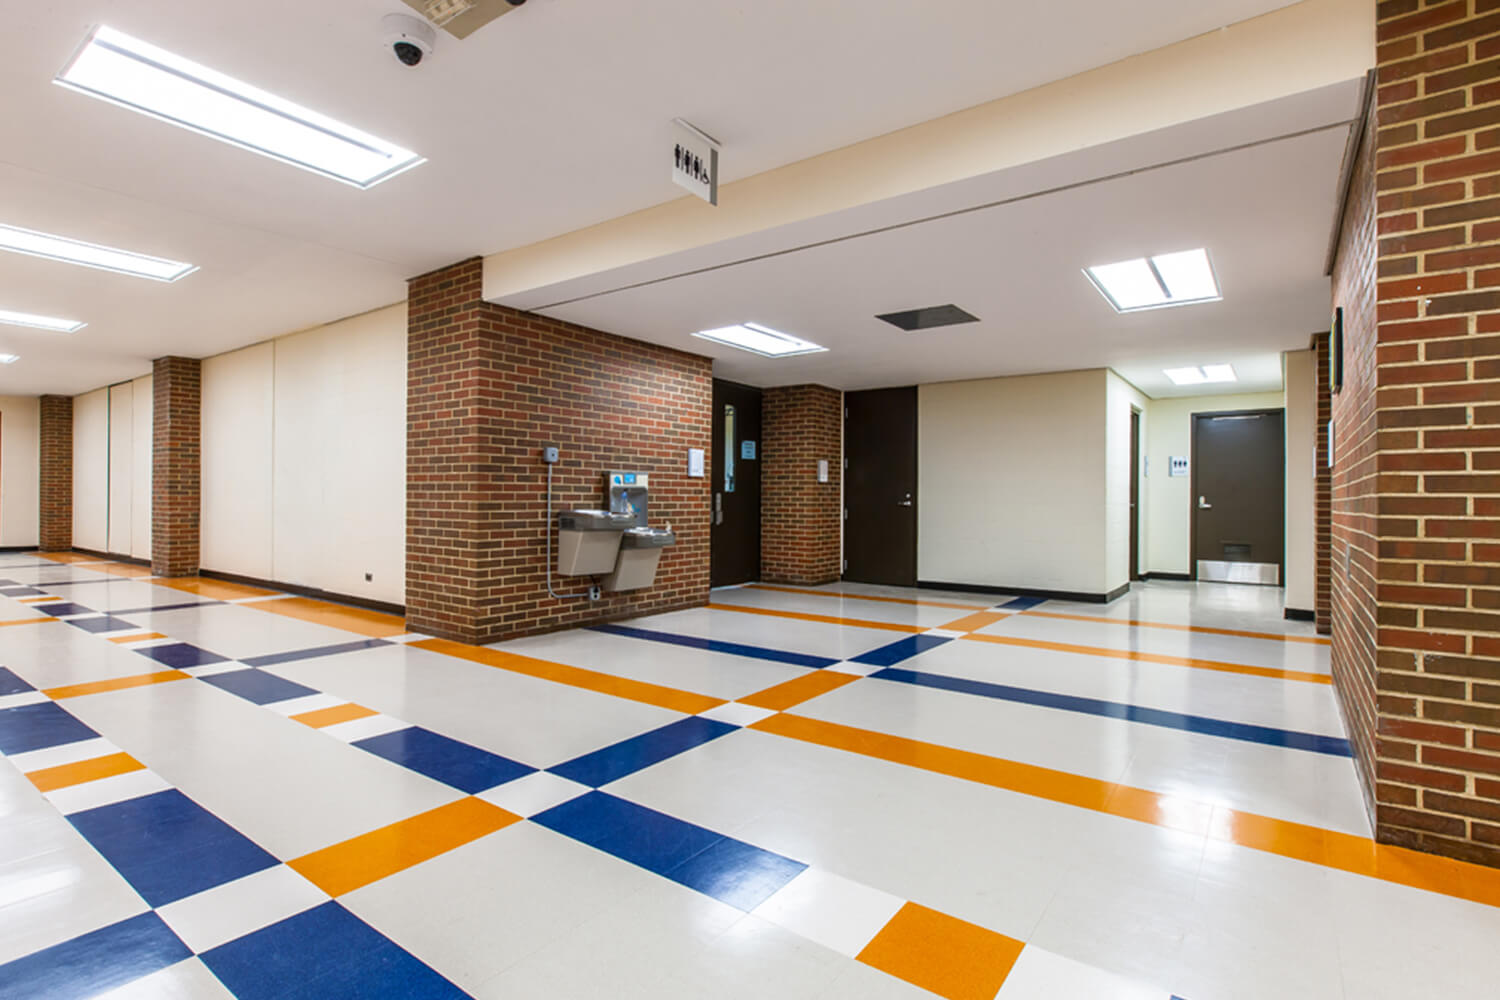 Evanston Township High School – Entry & Renovation Project interior 2